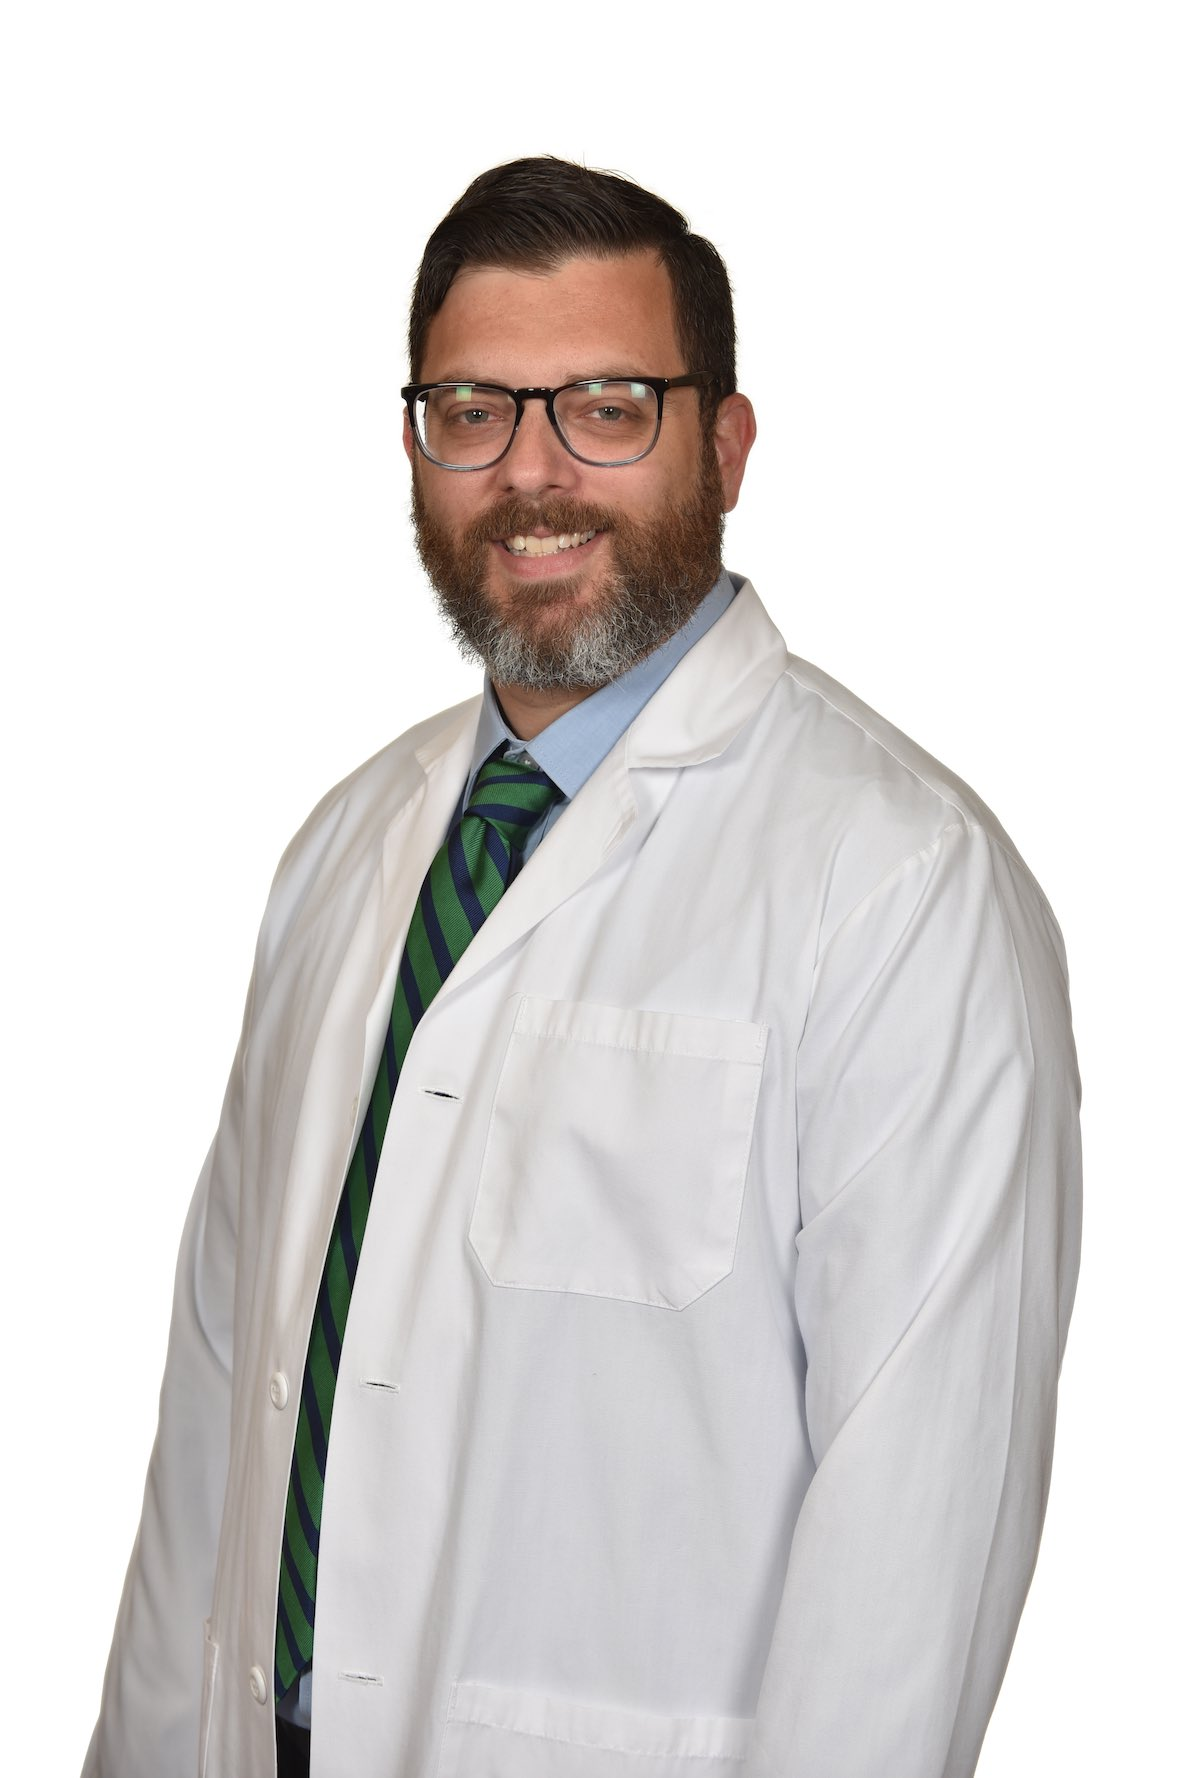 Brian Harris MD - Behavioral Health and Development Physician